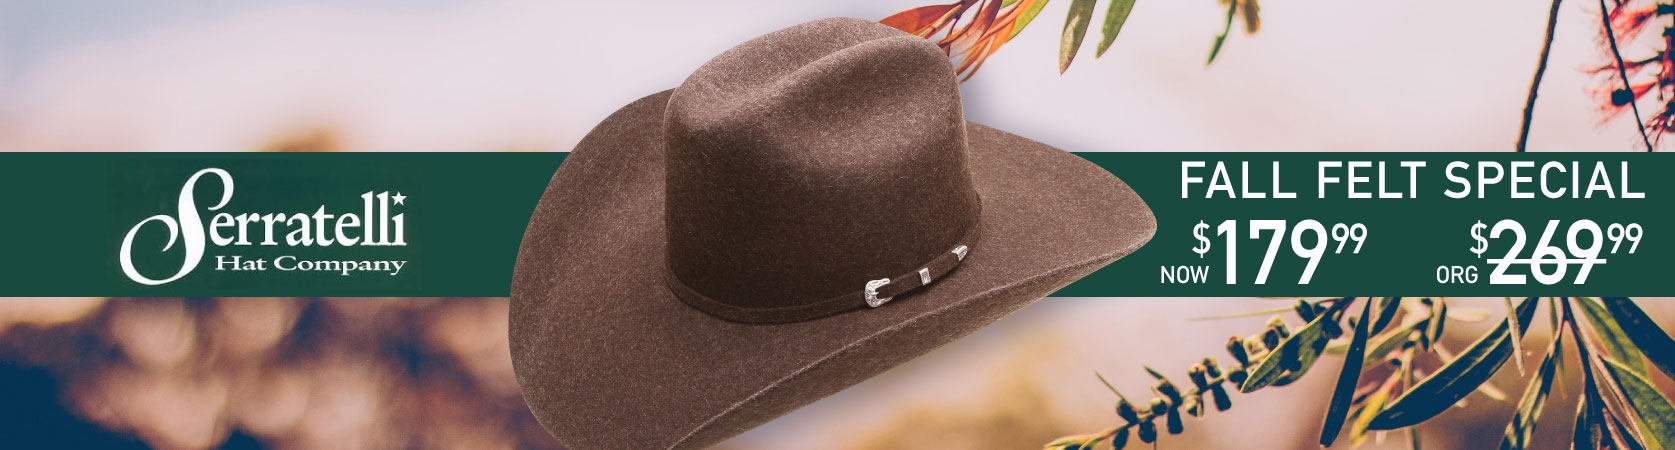 Serratelli Felt Hats